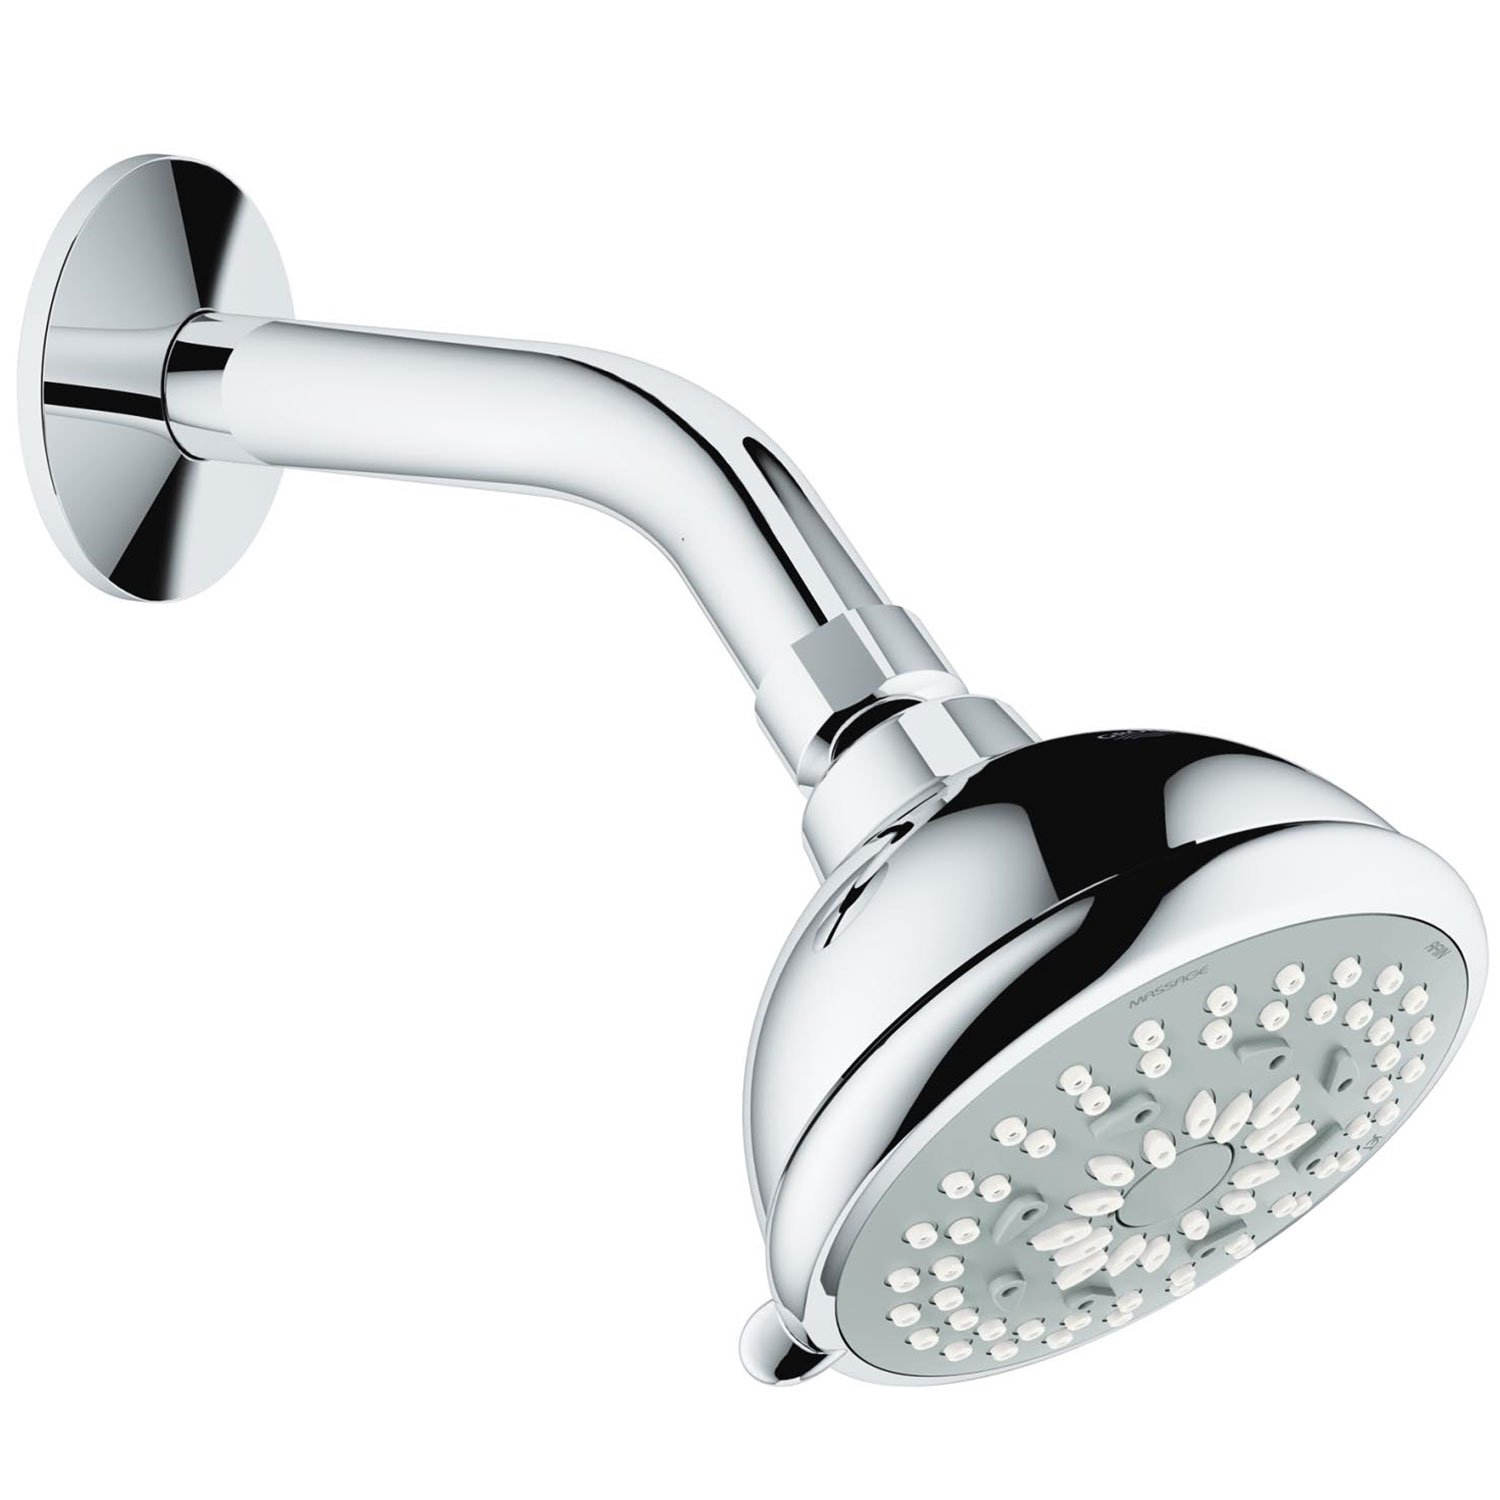 Grohe Bau 27614000 3 Function StarLight Bathroom Shower Head with Arm, Chrome